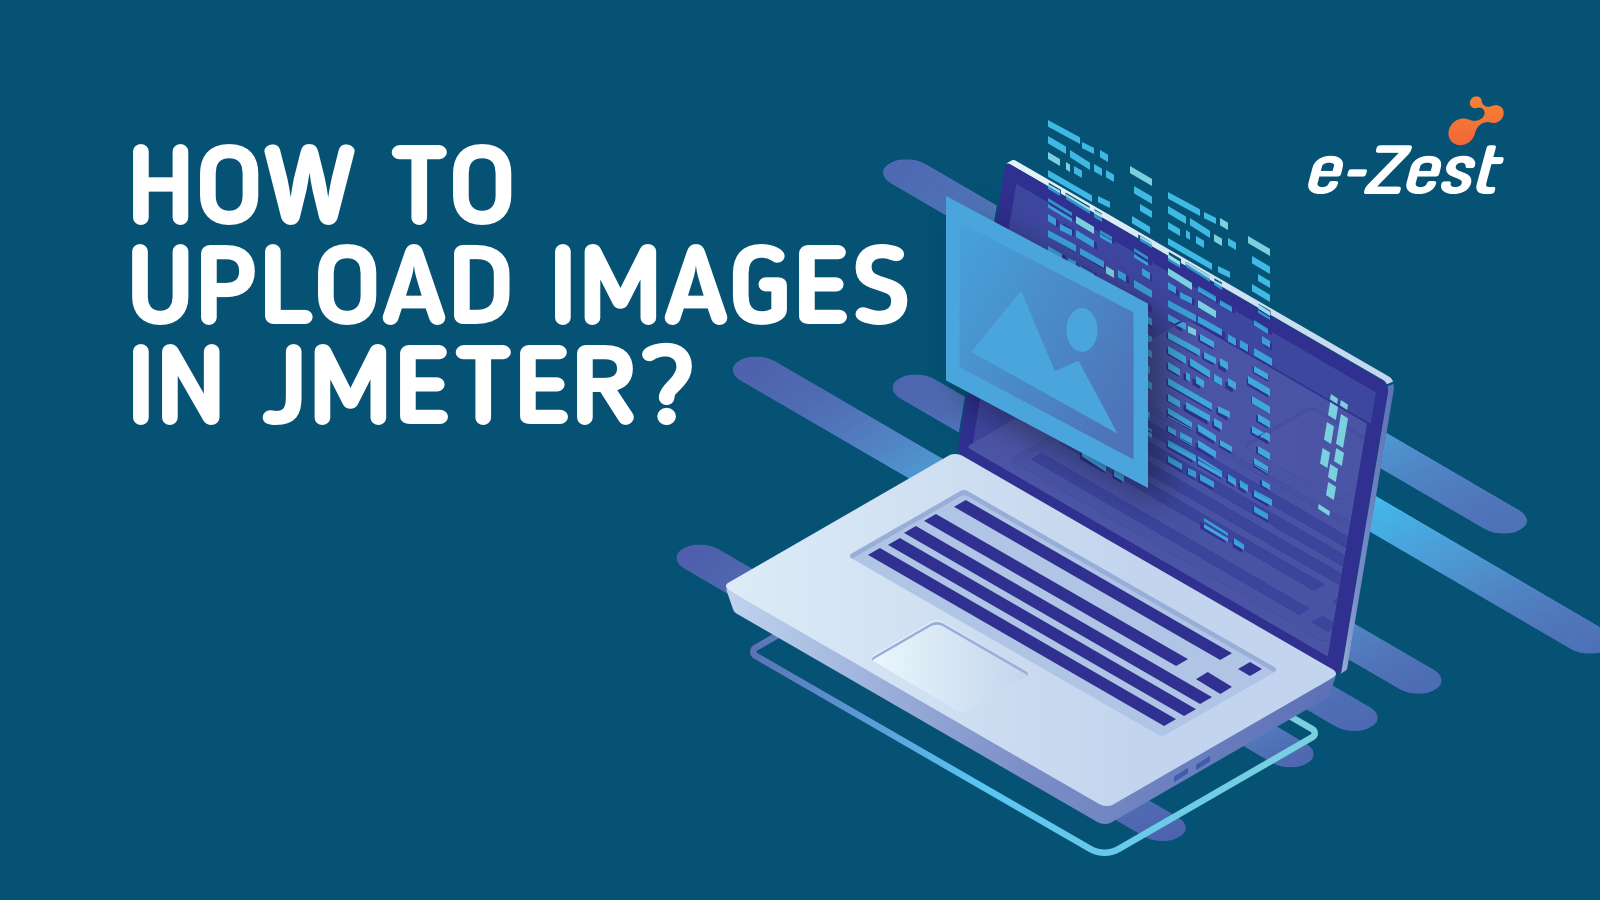 How to upload images in JMeter?